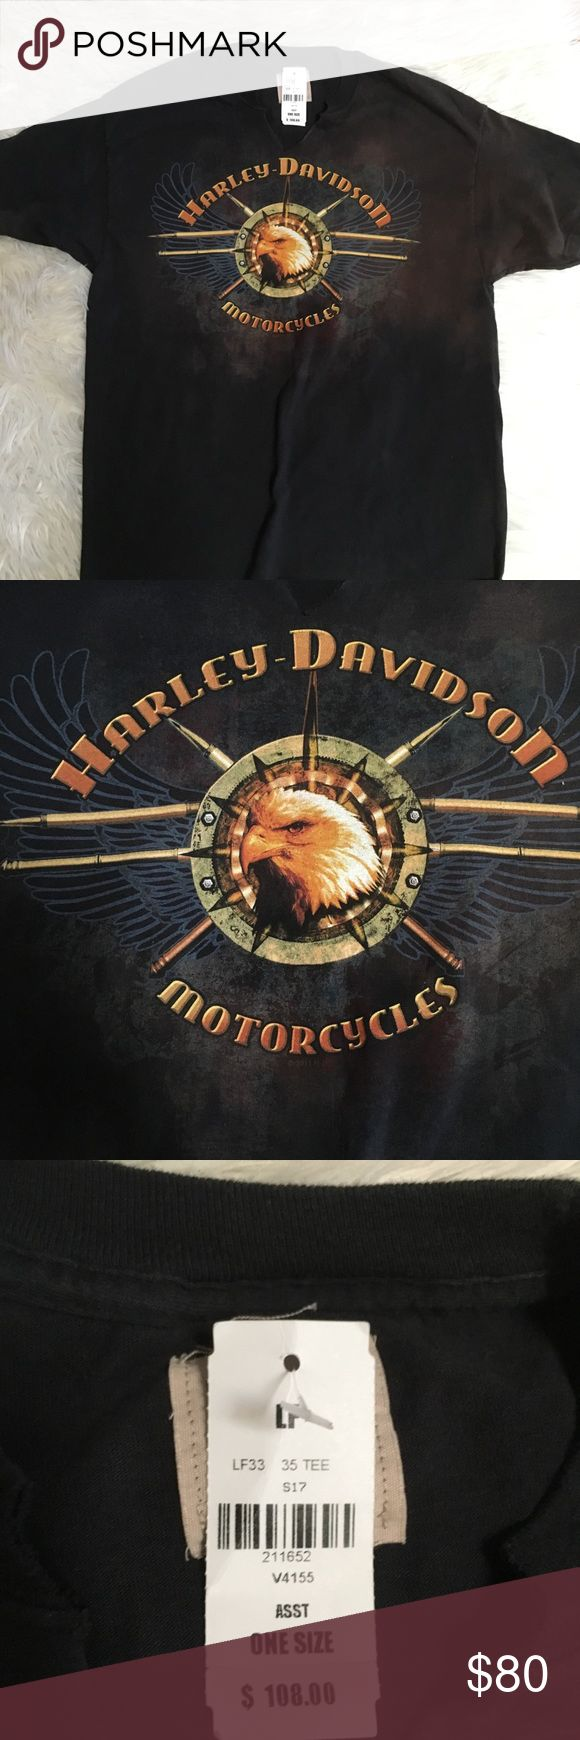 NWT LF Harley Davidson shirt This is a Harley Davidson shirt from LF. The brand is Furst Of A Kind. Texas themed, with vintage inspired discoloration and look. Super cool! LF Tops Tees - Short Sleeve